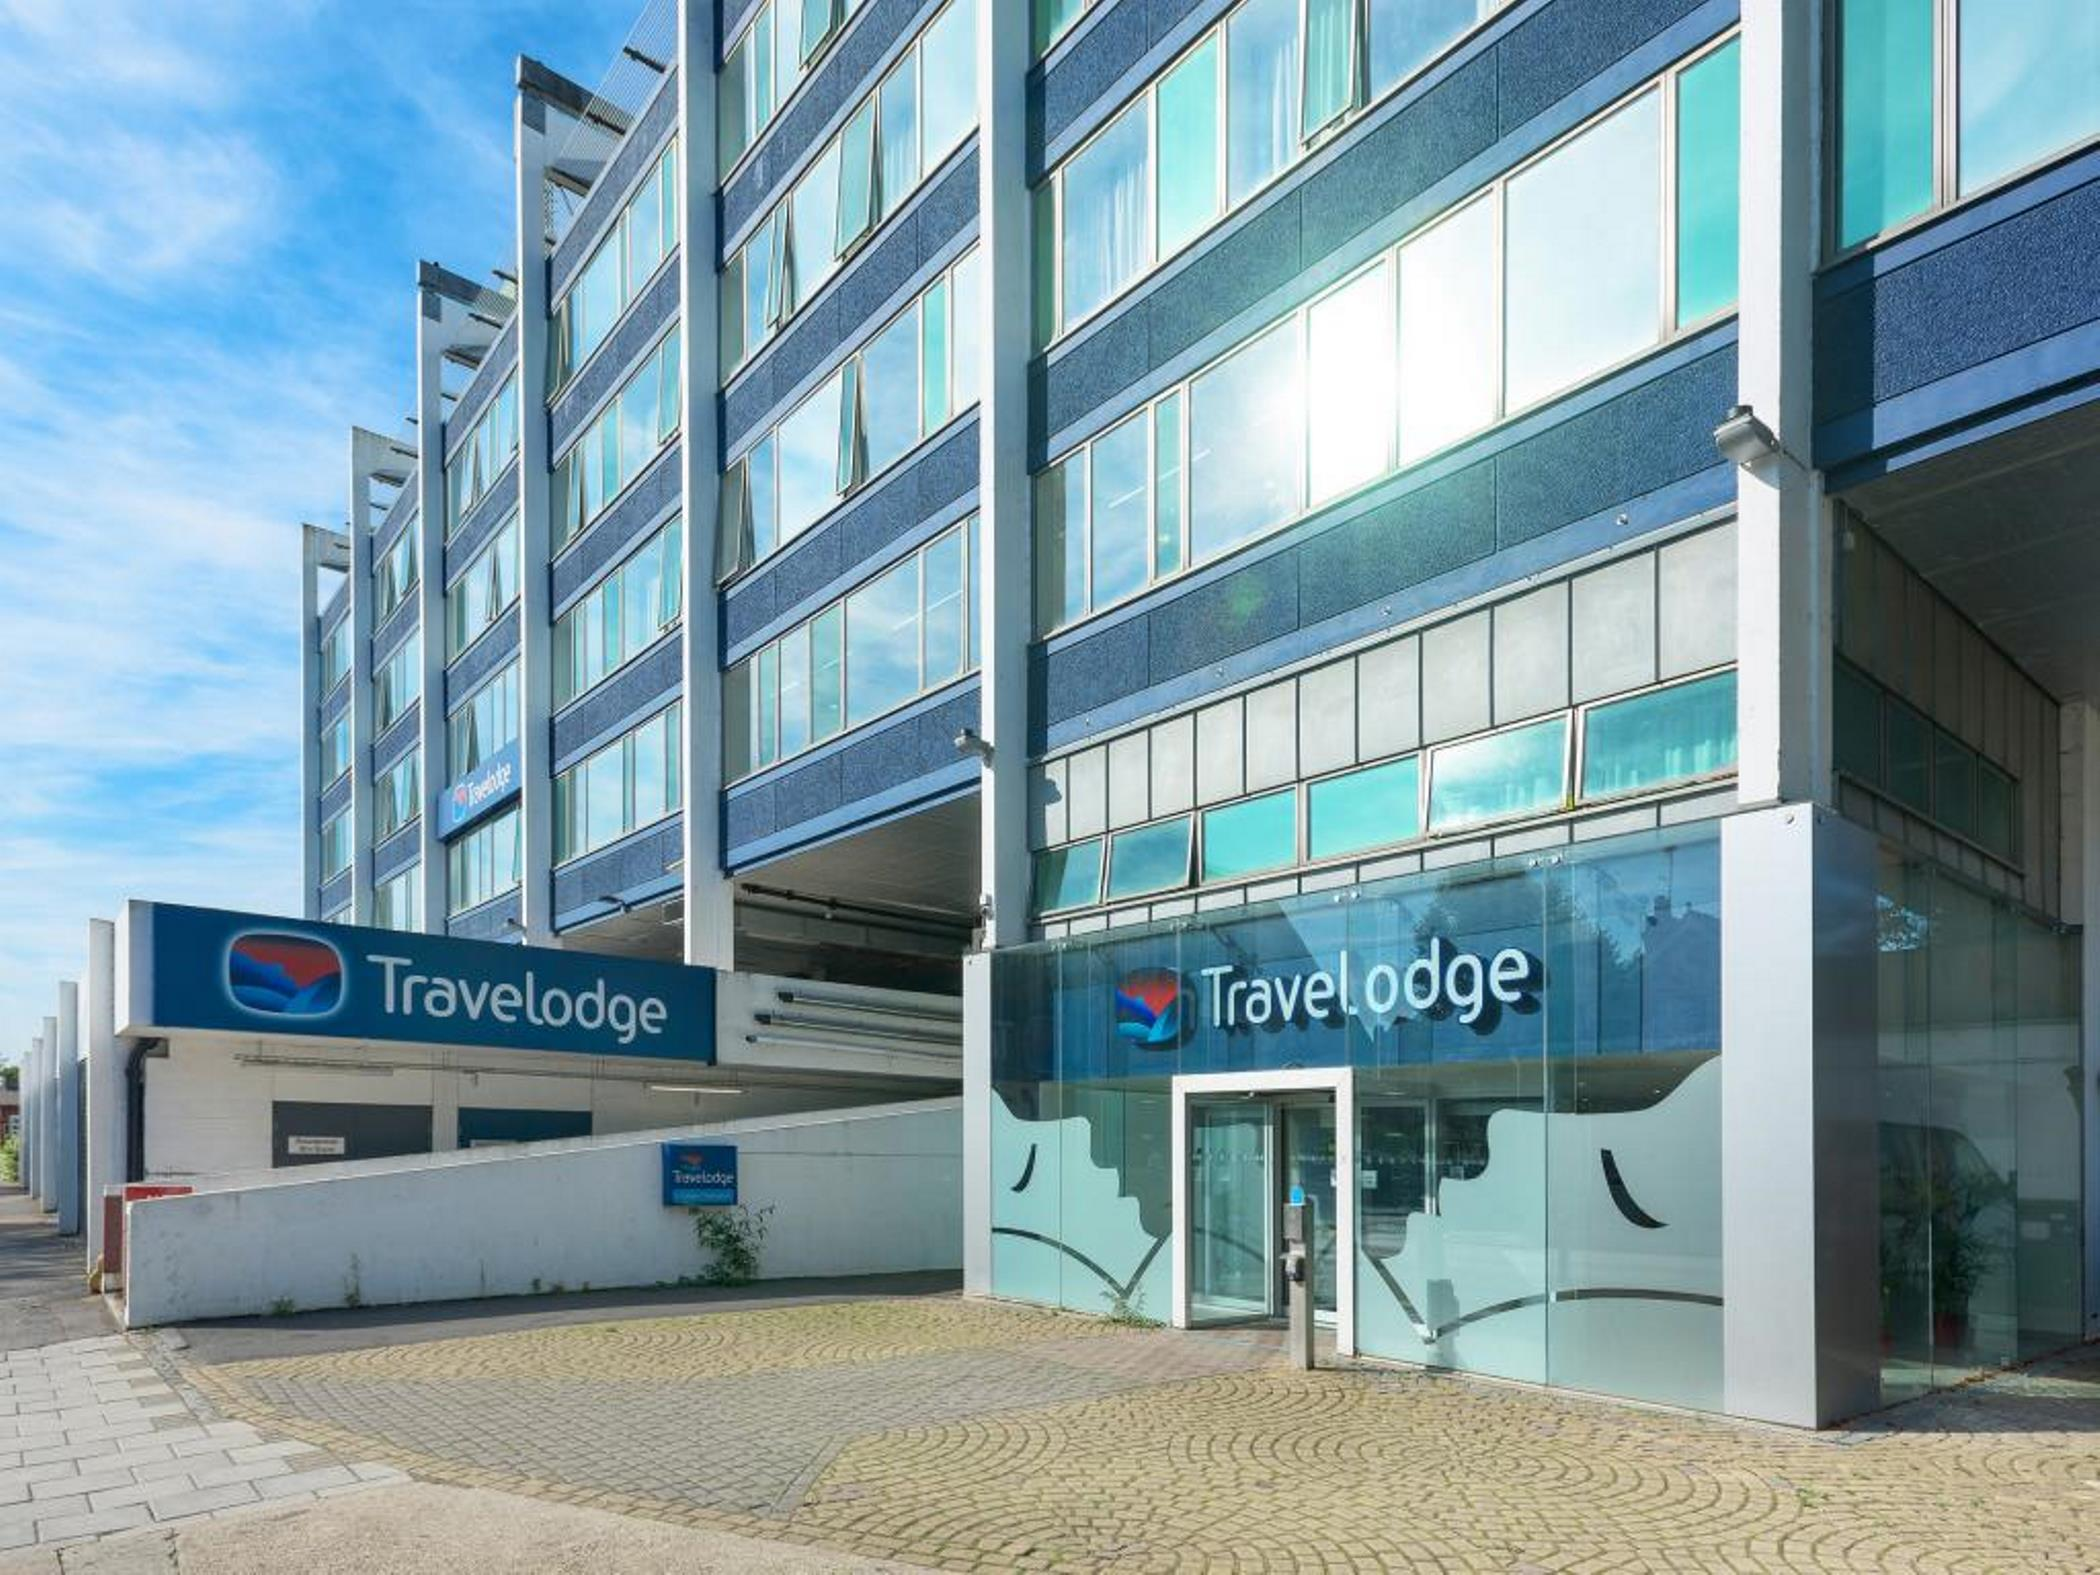 Travelodge London Teddington, London